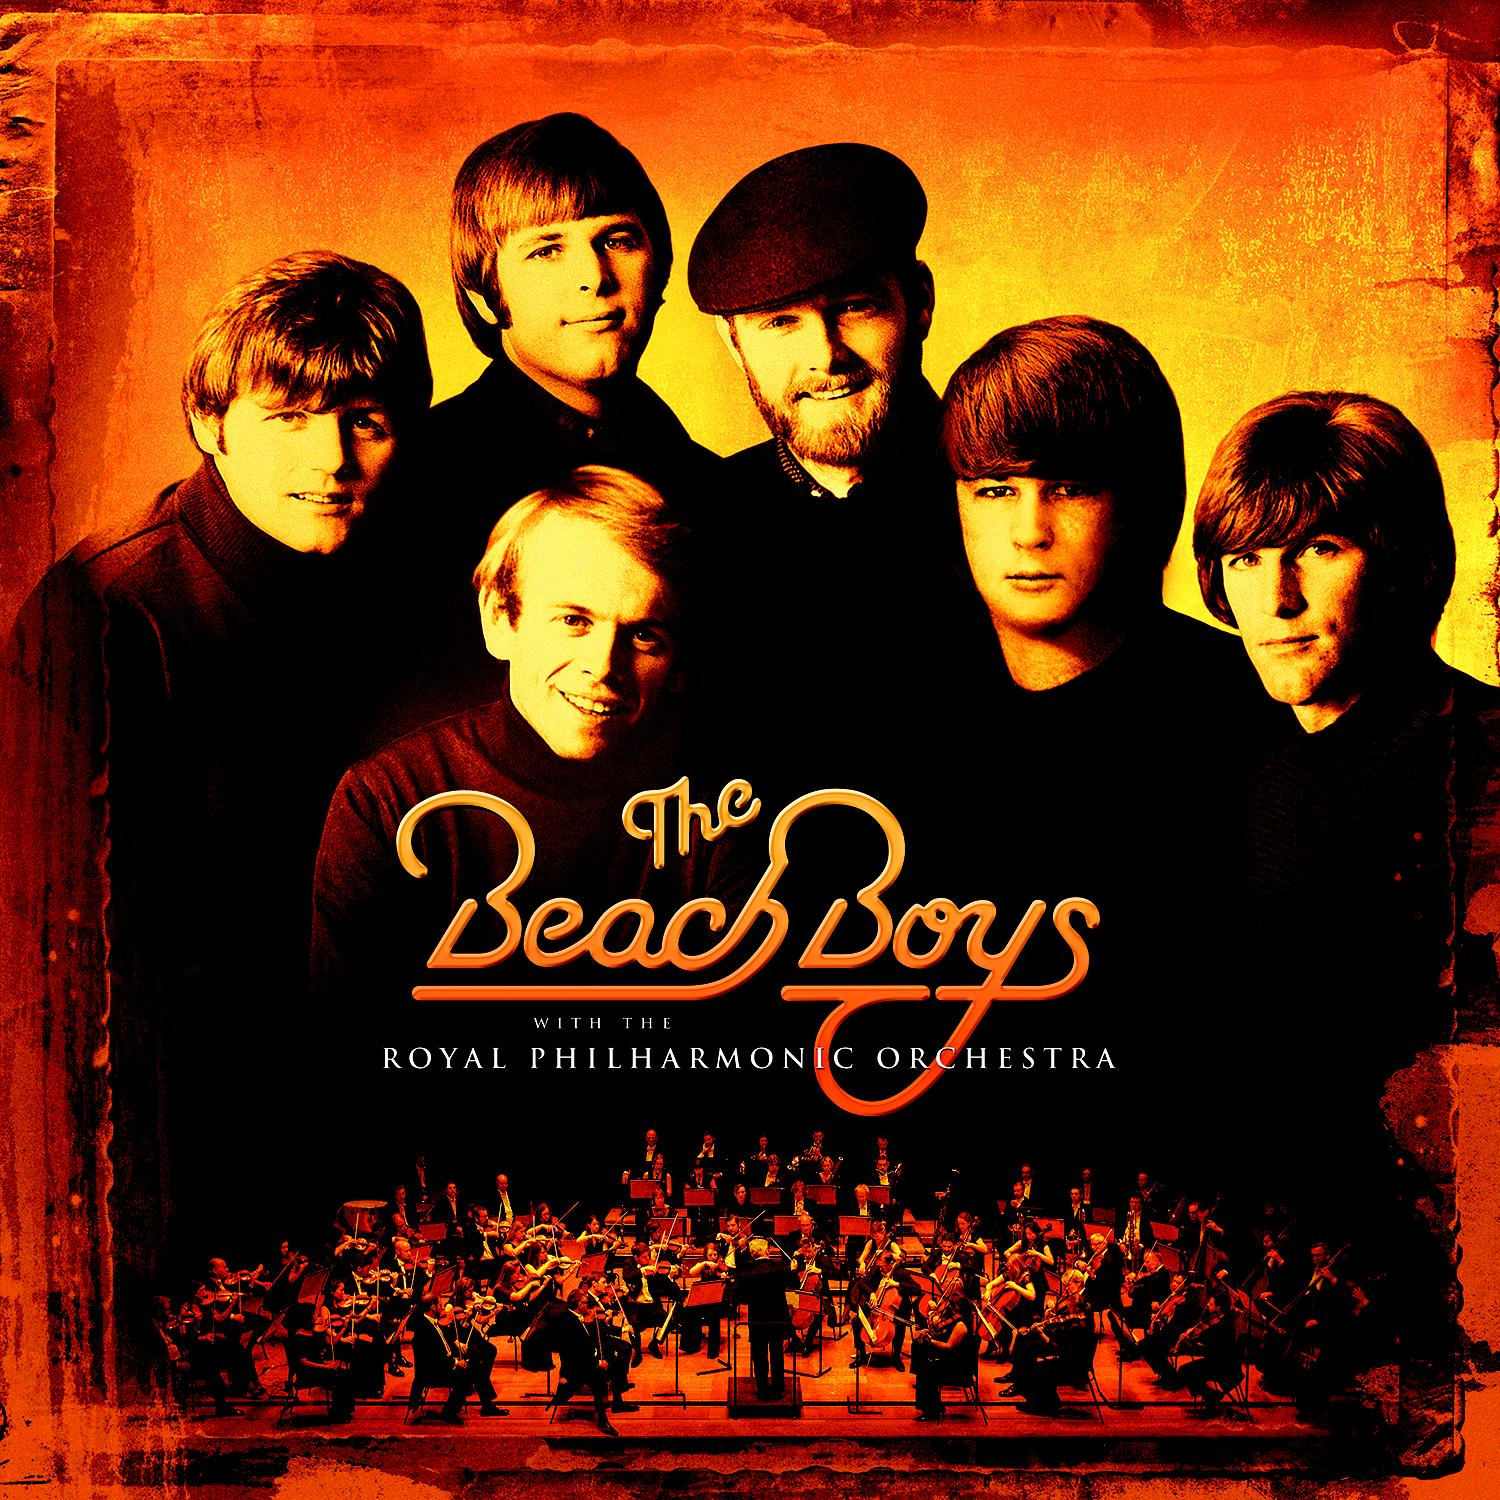 The Beach Boys with The Royal Philharmonic Orchest